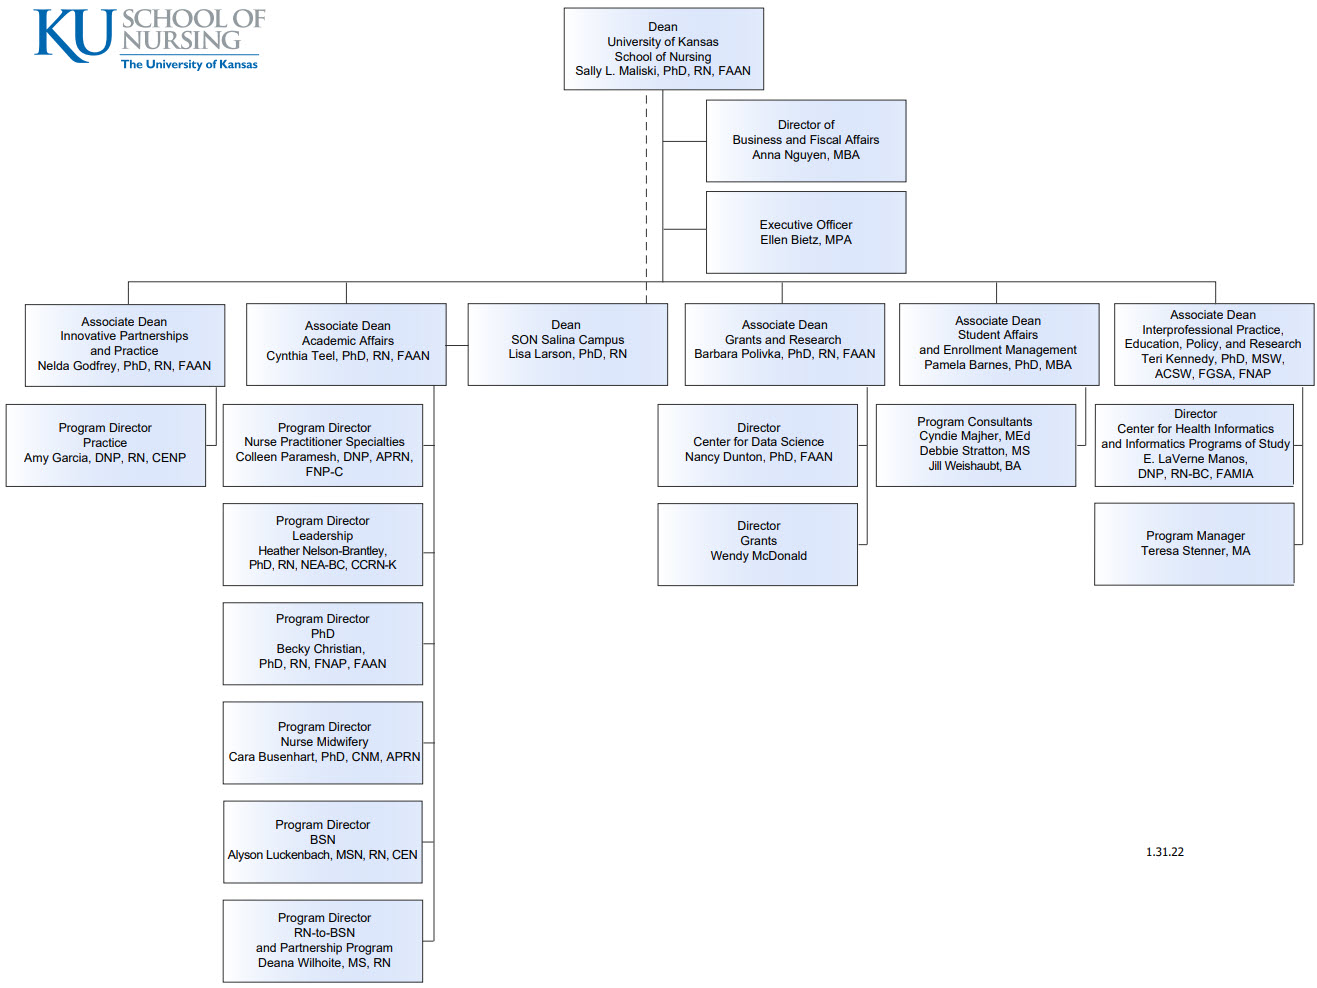 KU School of Nursing organizational chart